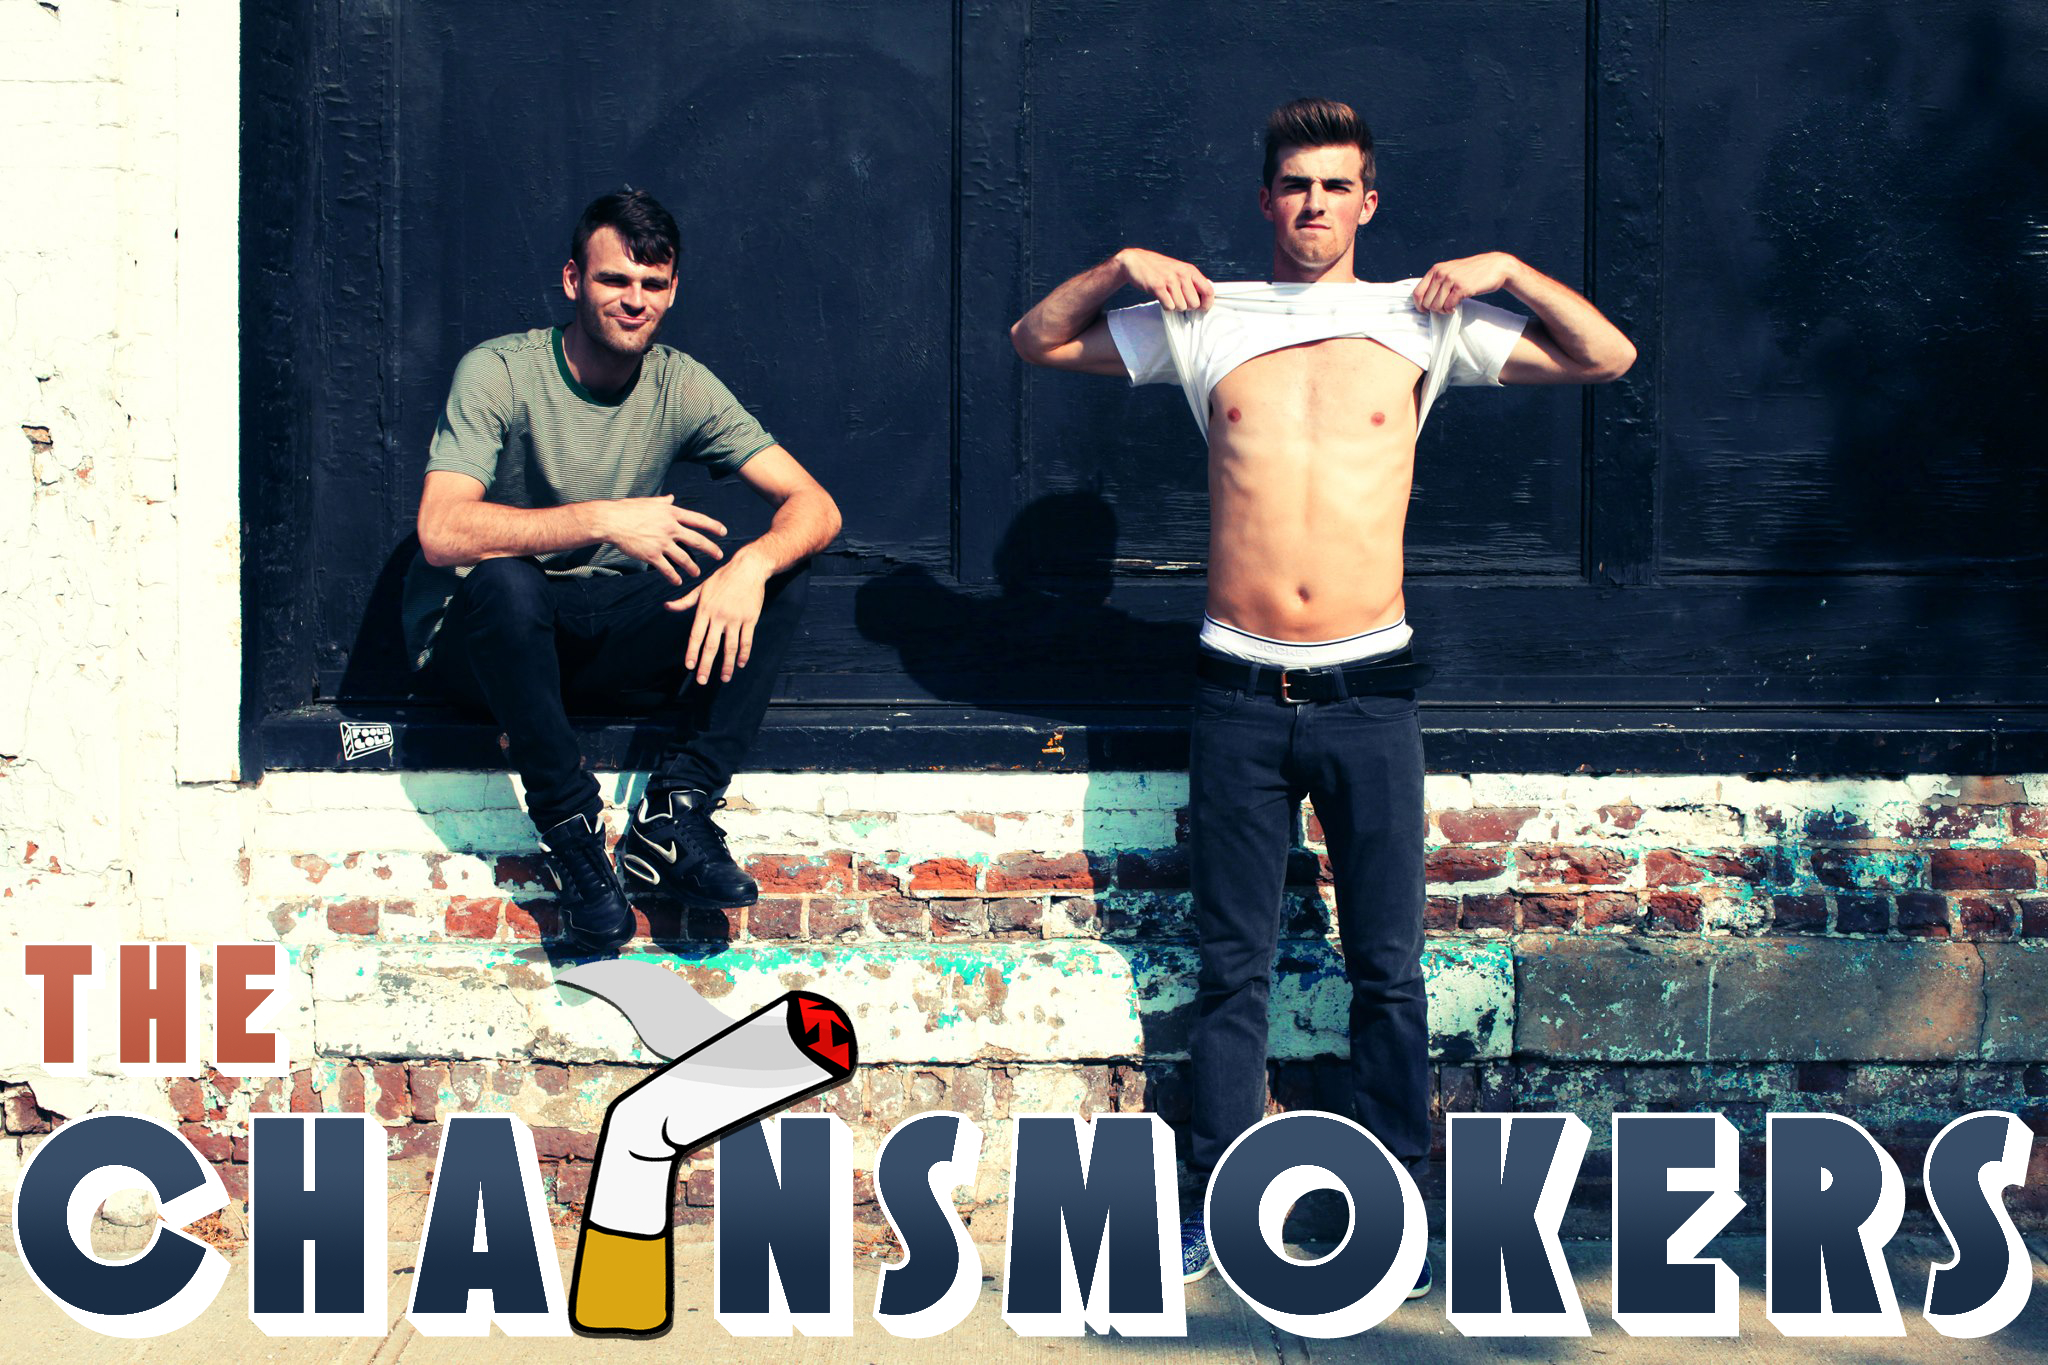 The Chainsmokers Widescreen